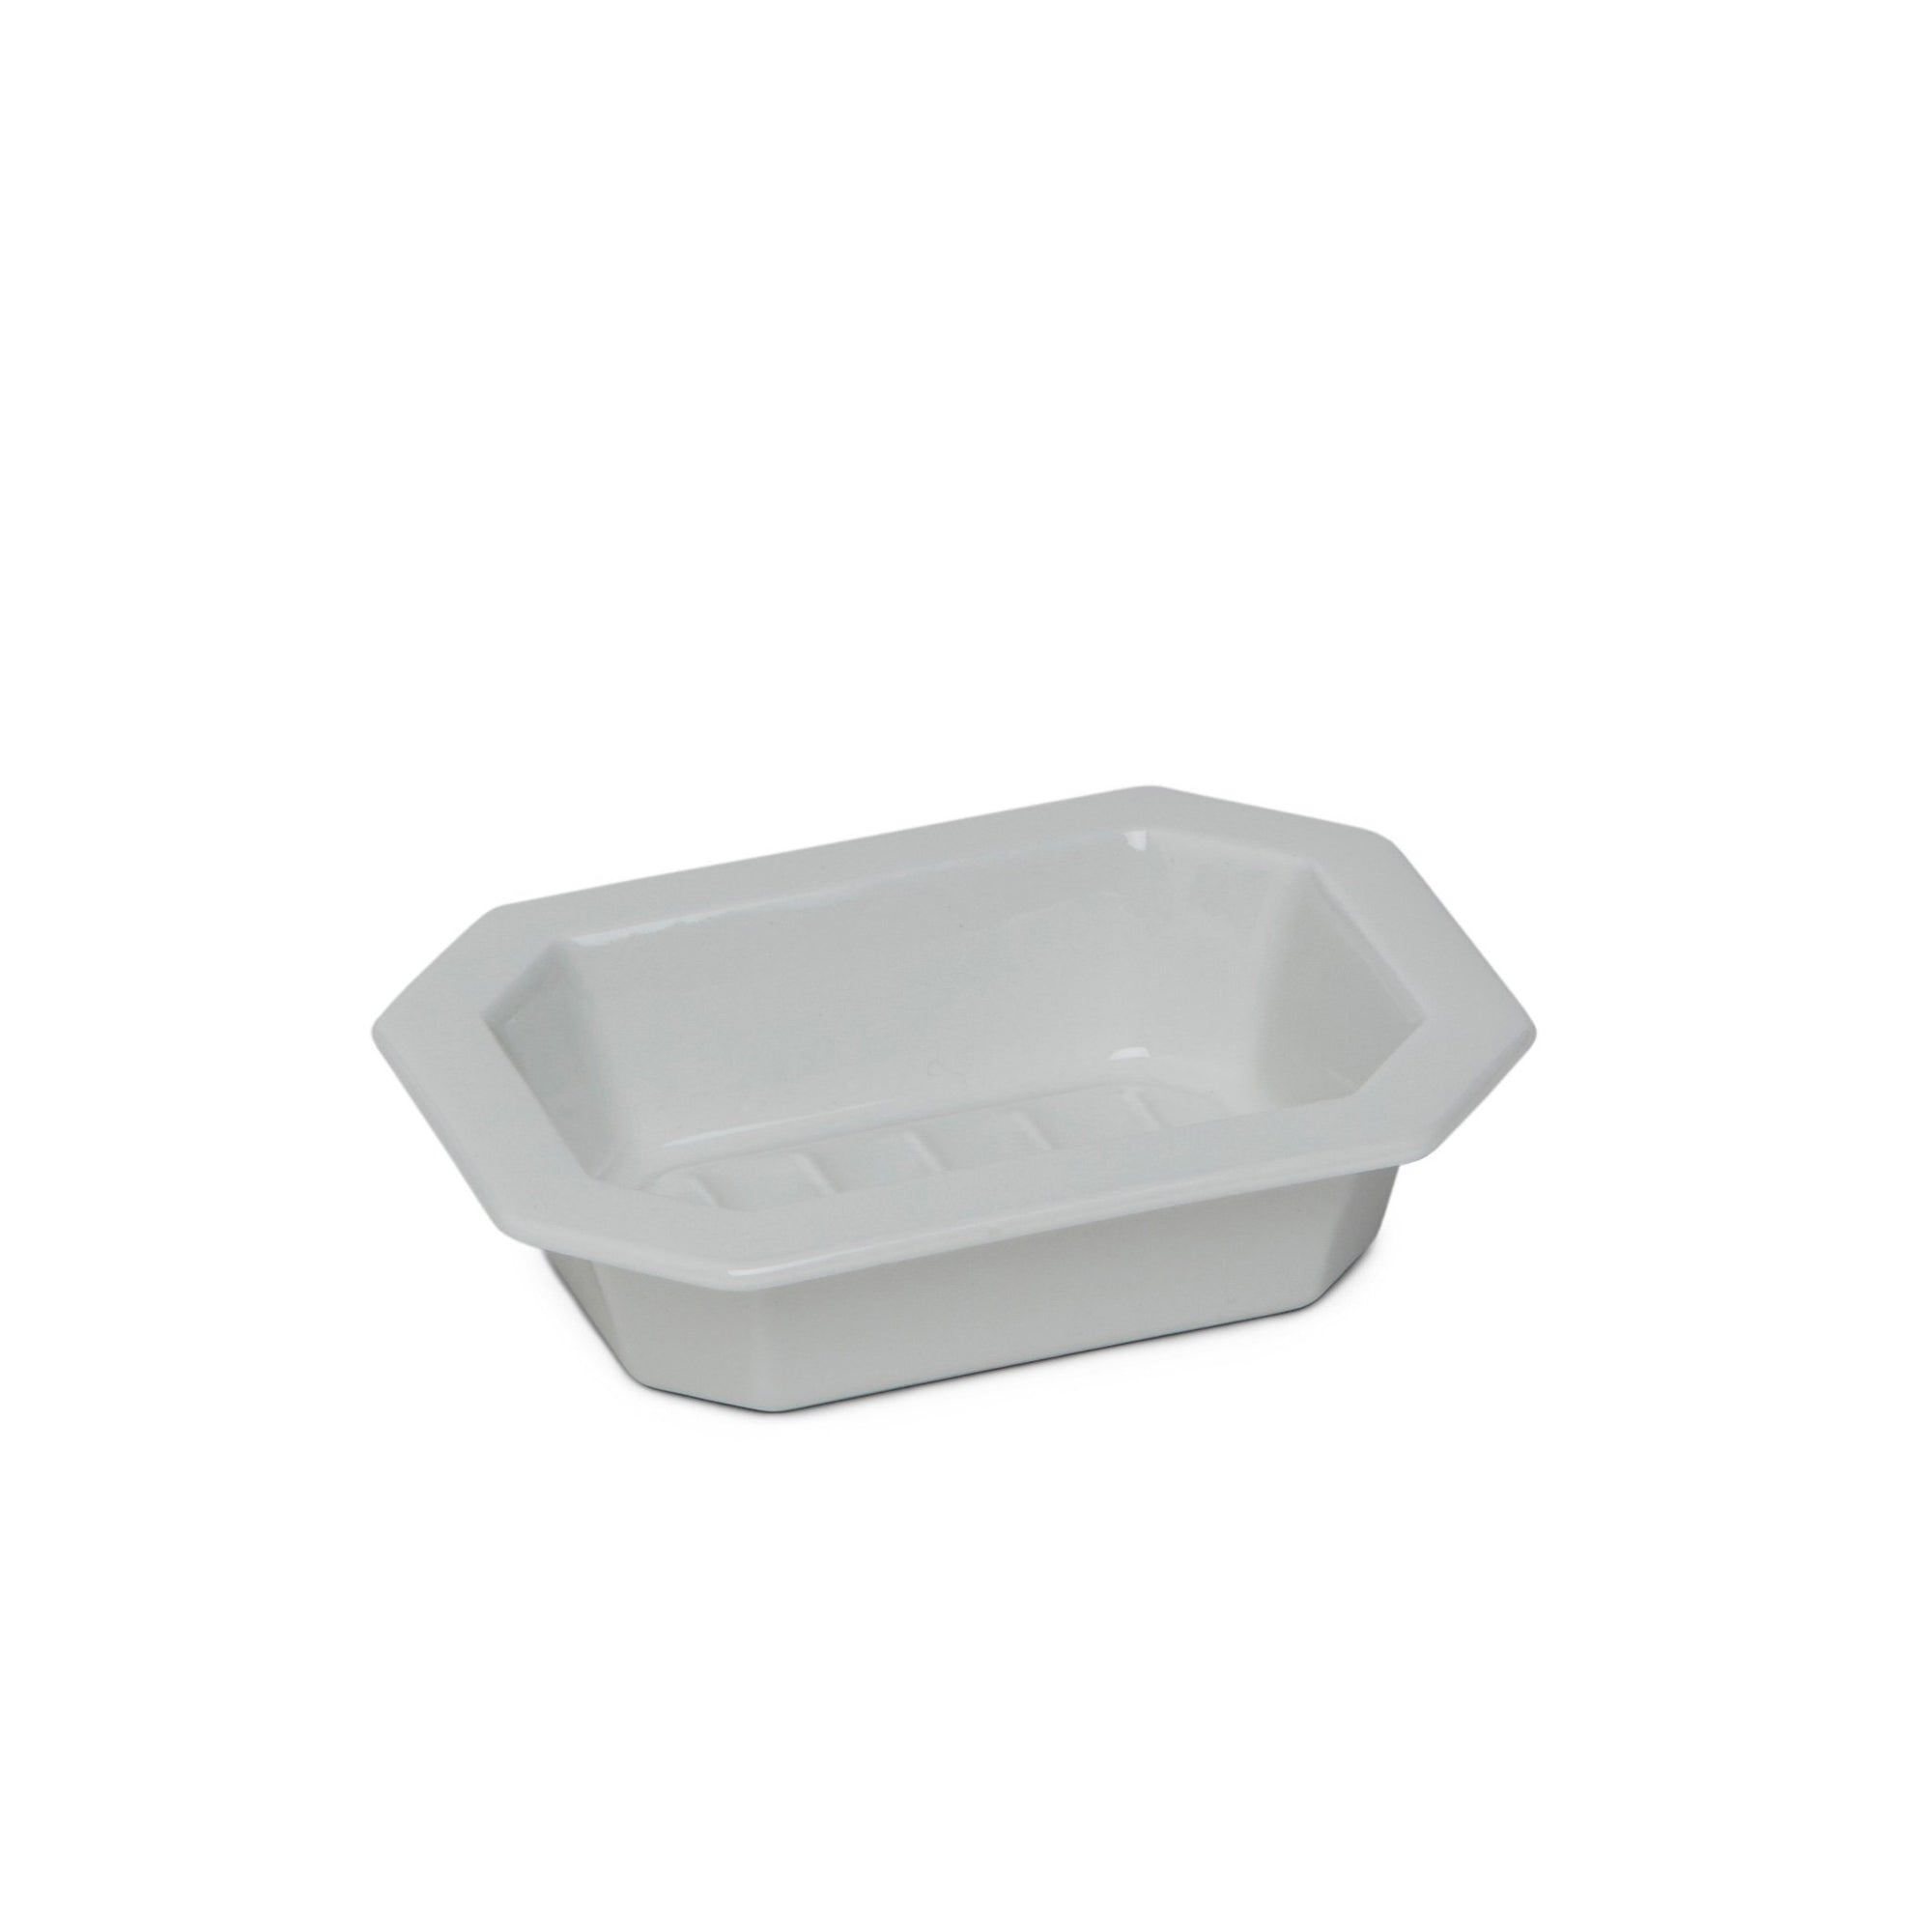 3398-WHT Sherle Wagner International Harrison Ceramic Soap Dish in White